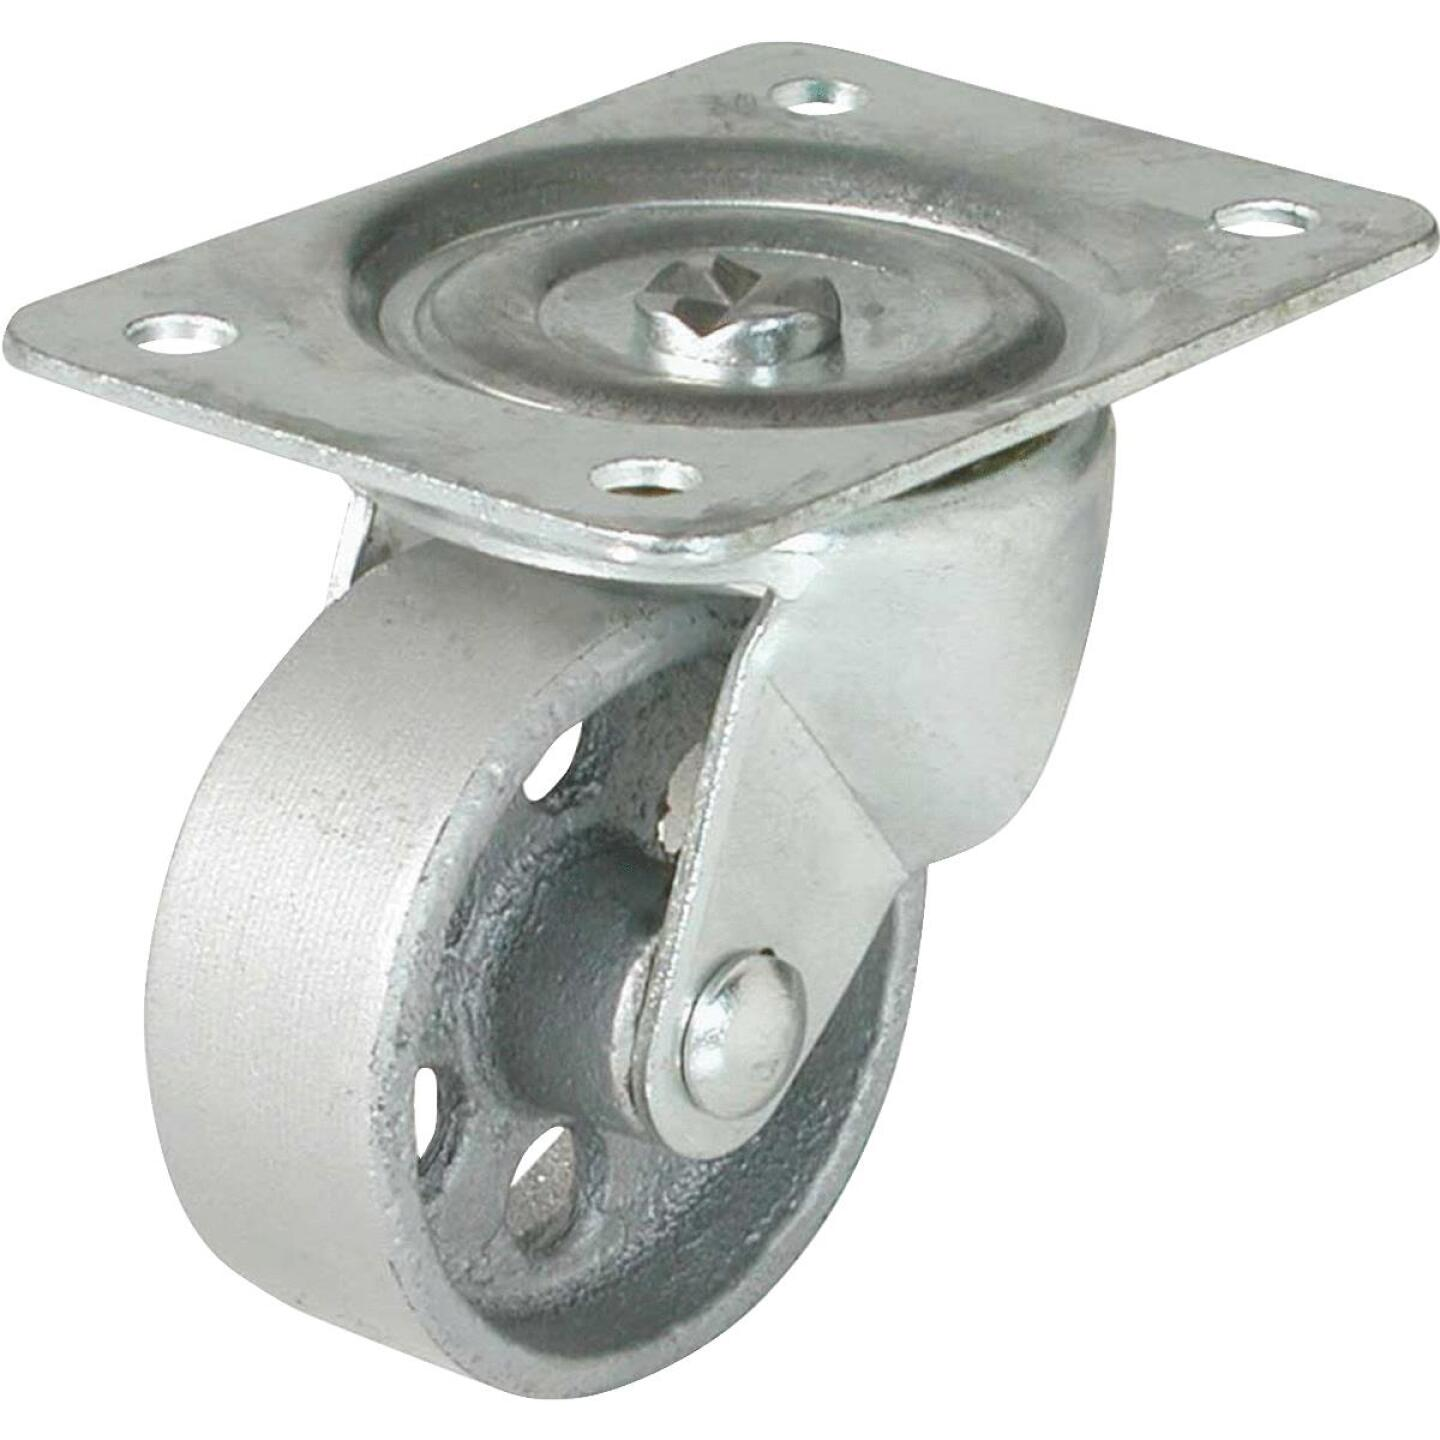 Shepherd 4 In. Cast-Iron General-Duty Swivel Plate Caster Image 1